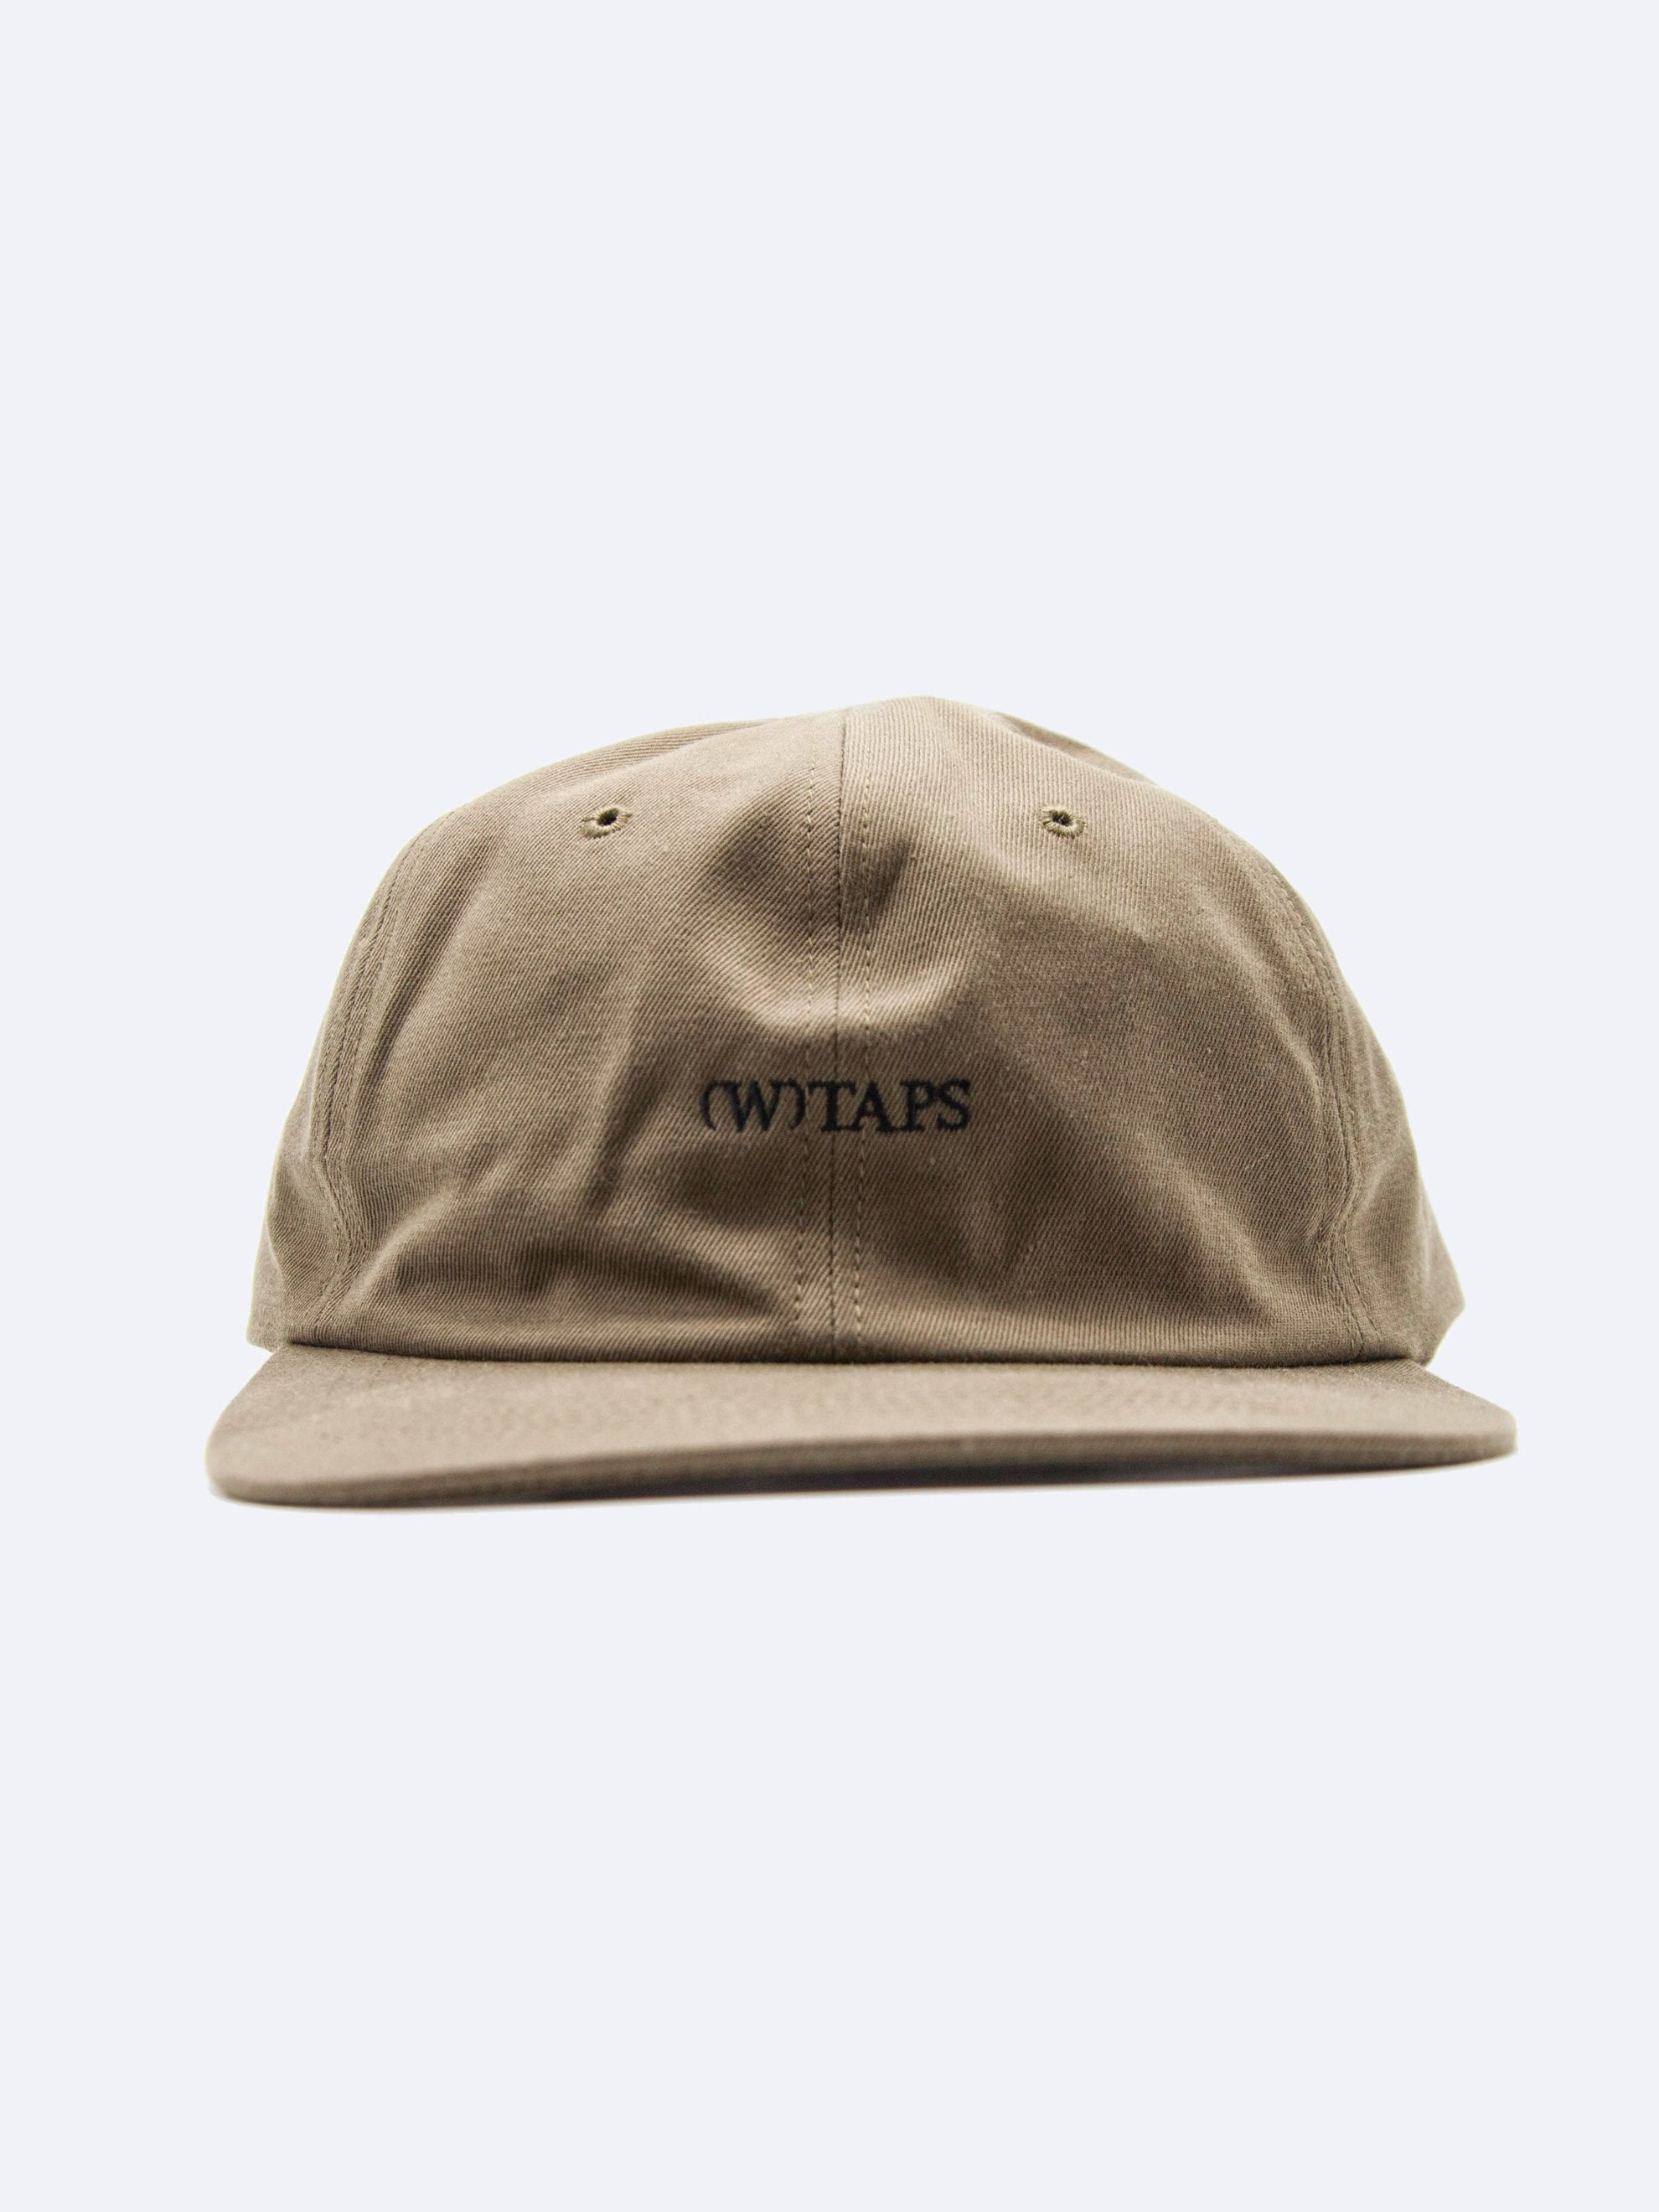 Olive Drab T-6 02 Cap (Cotton Chino) 1